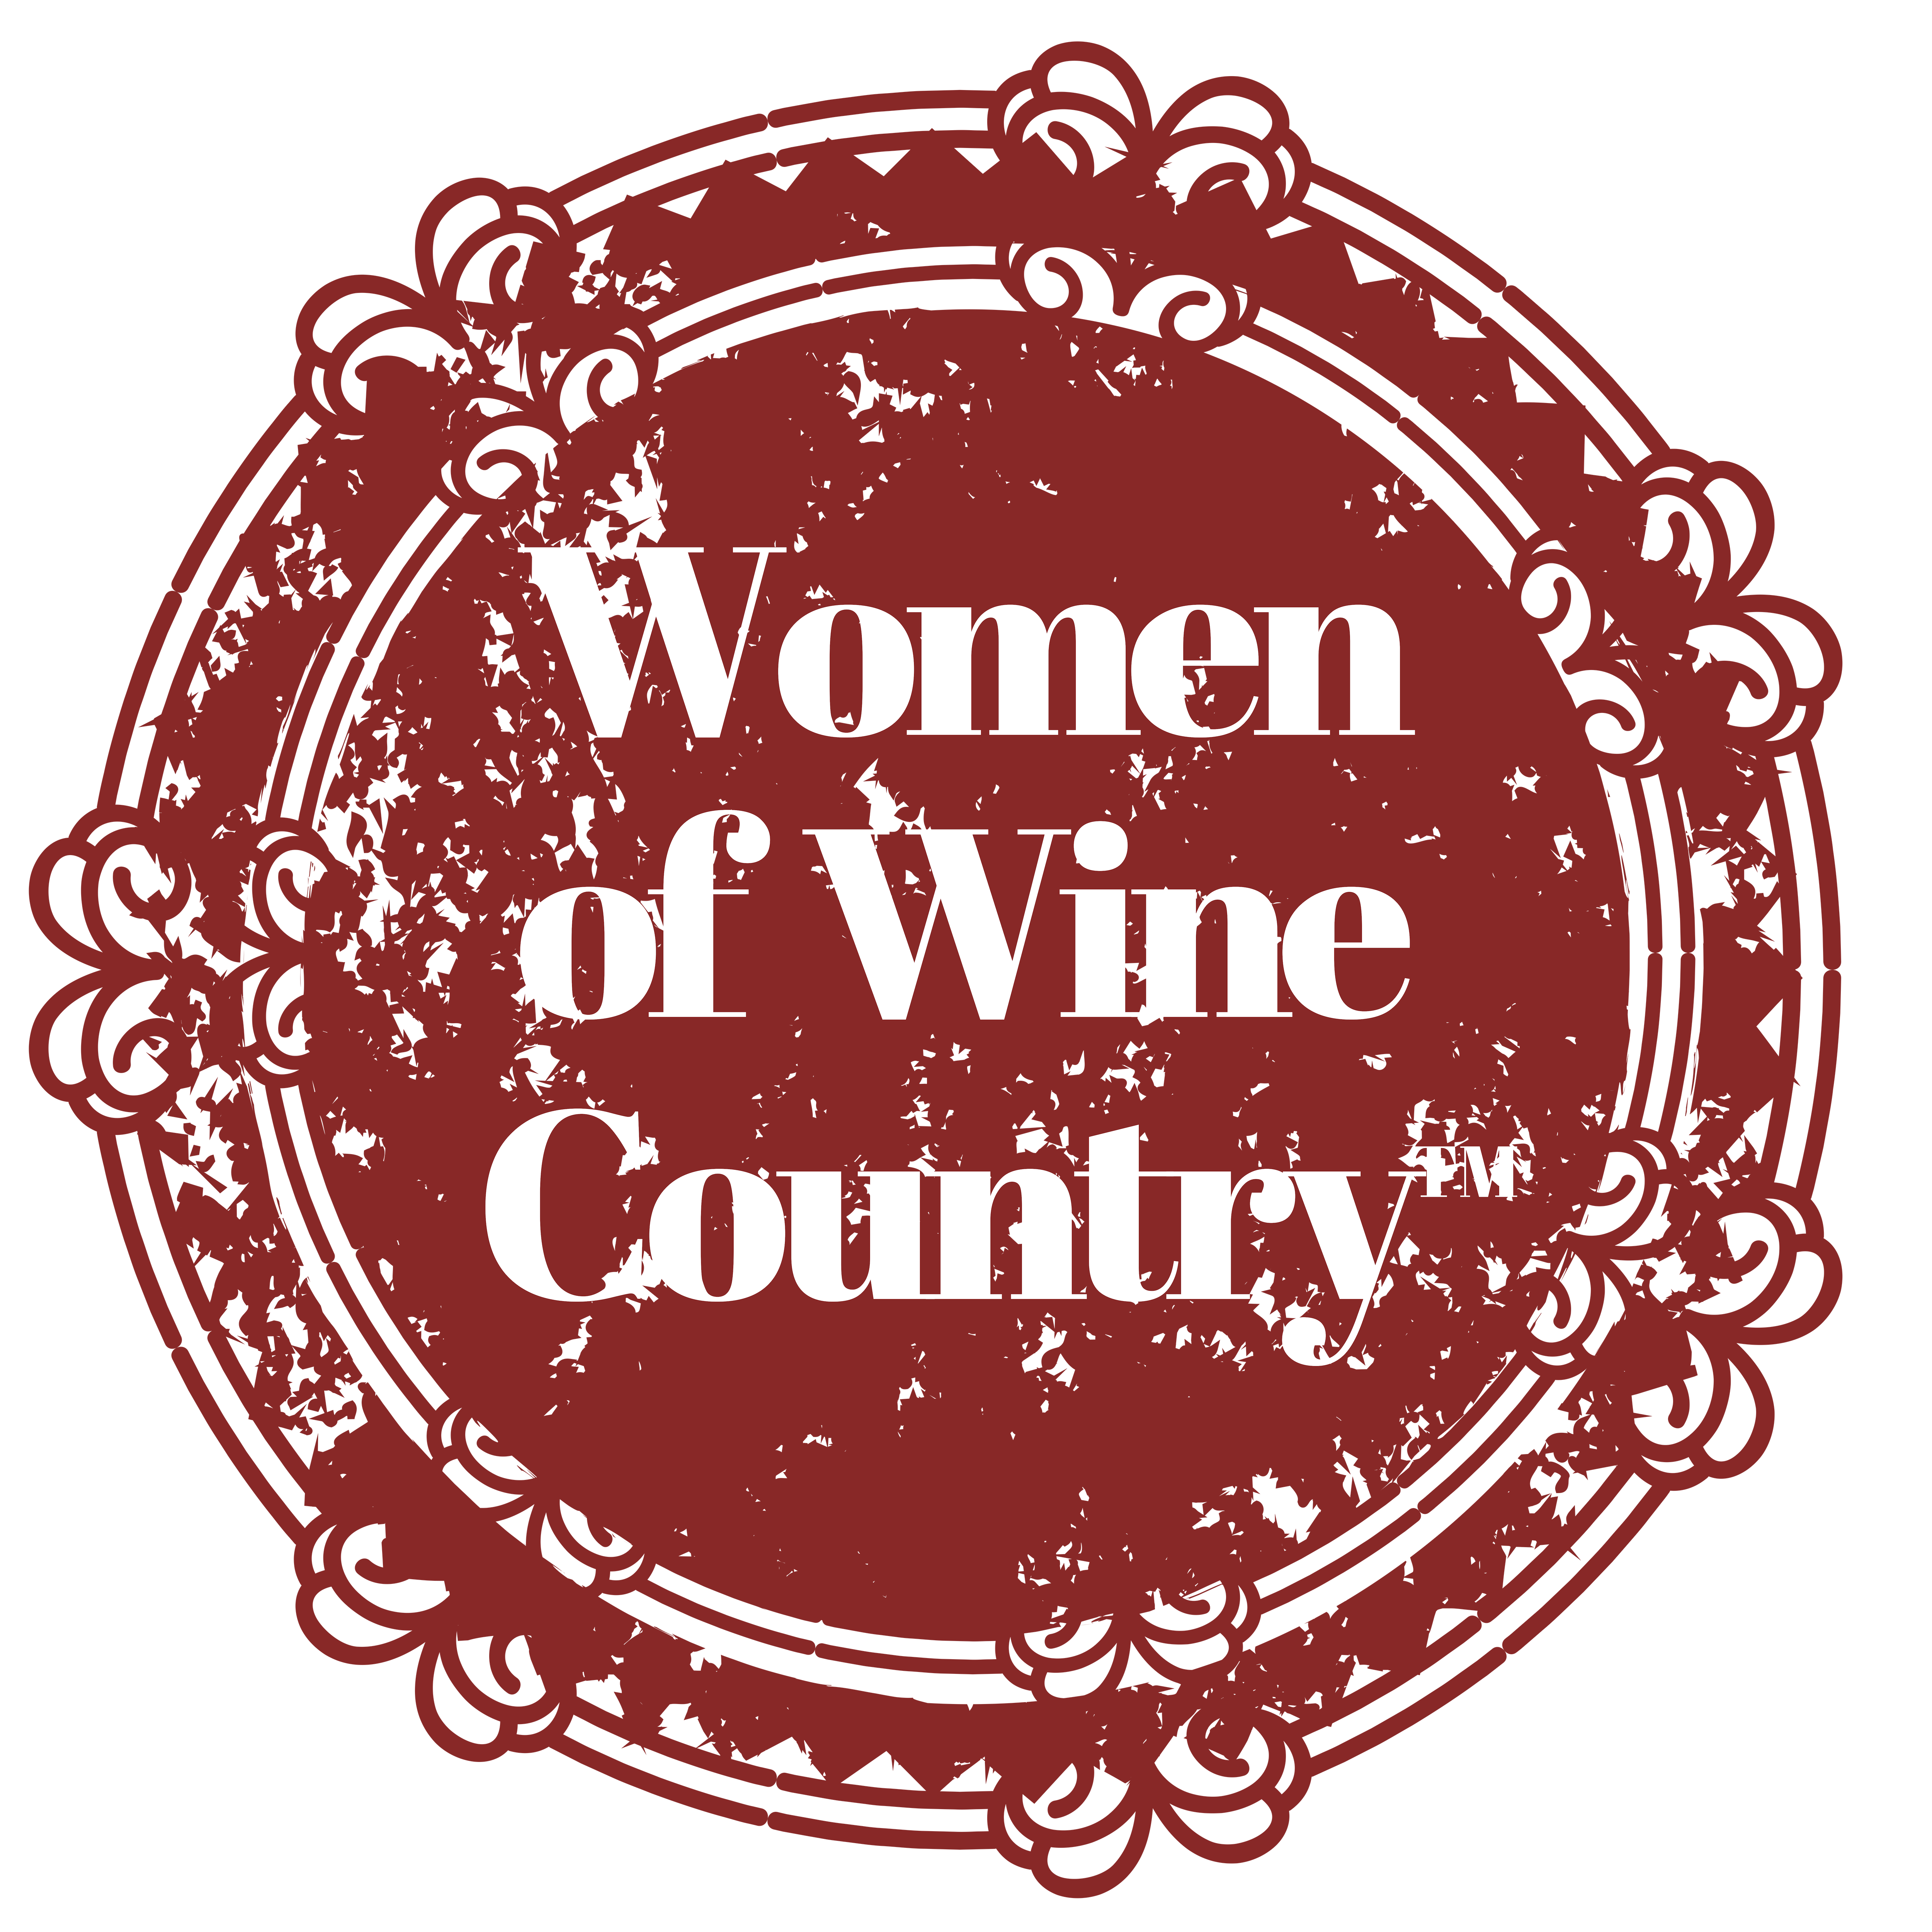 Women of Wine Country